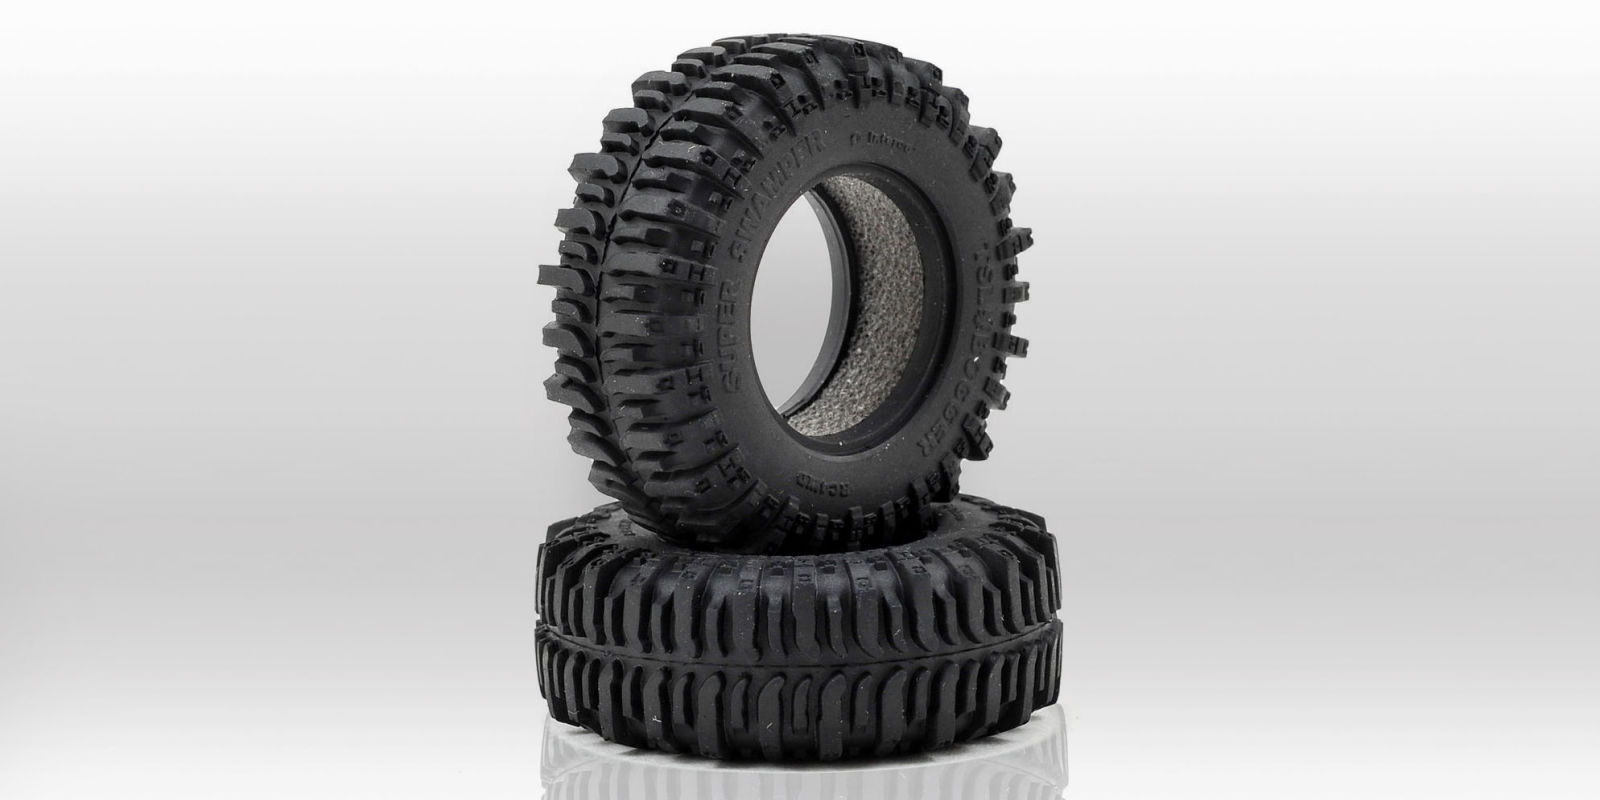 10 best off road tires all terrain tires for your car or truck 2016. Black Bedroom Furniture Sets. Home Design Ideas